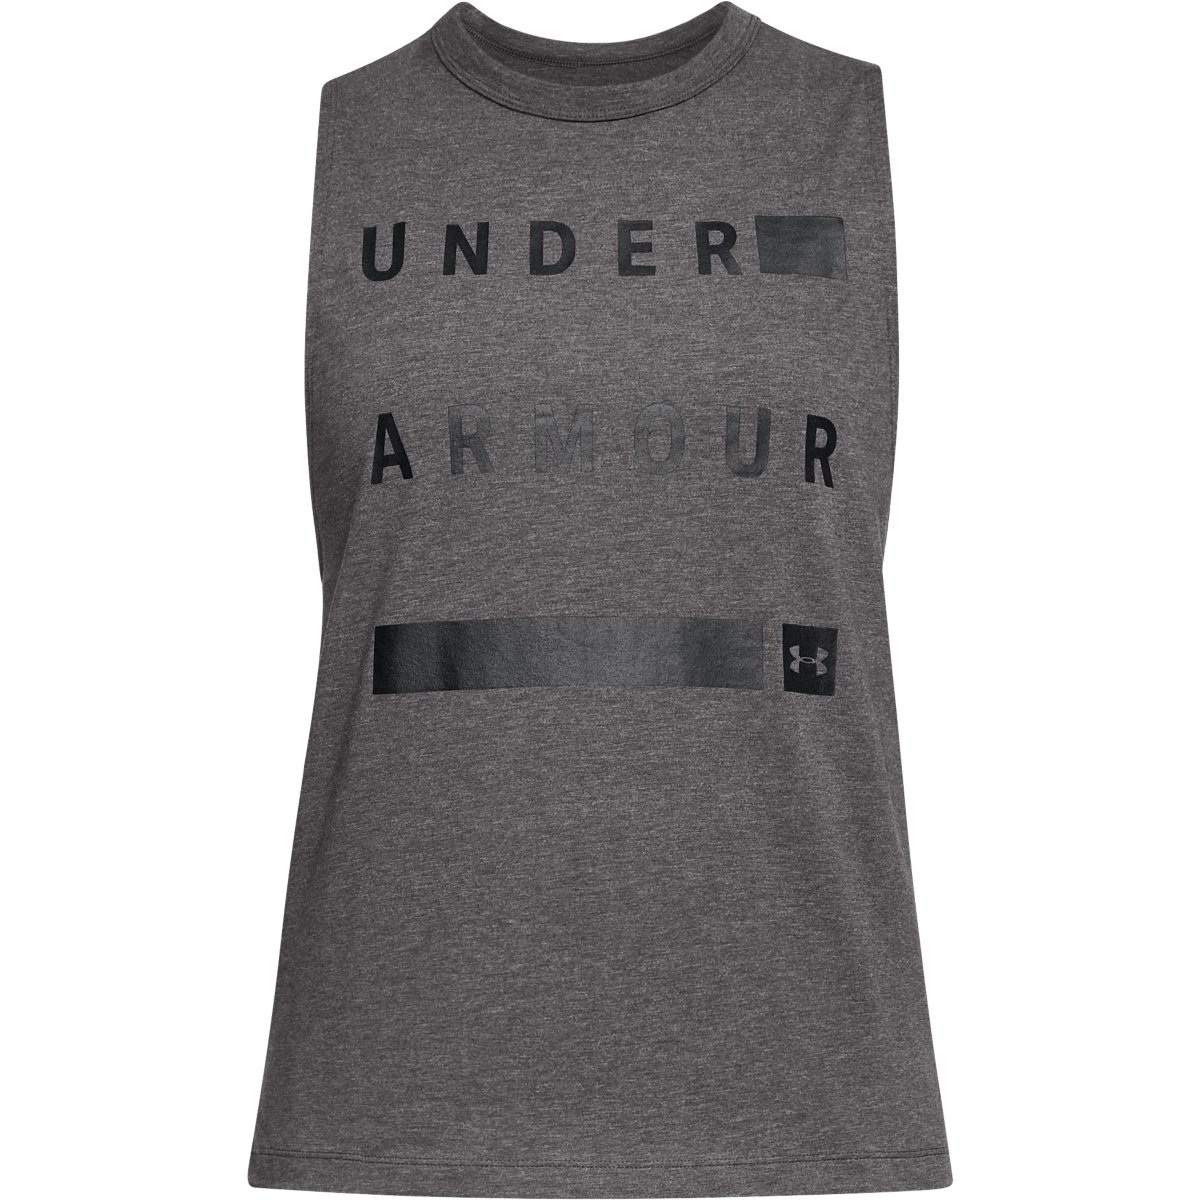 Under Armour Muscle Top - Dame | Amour